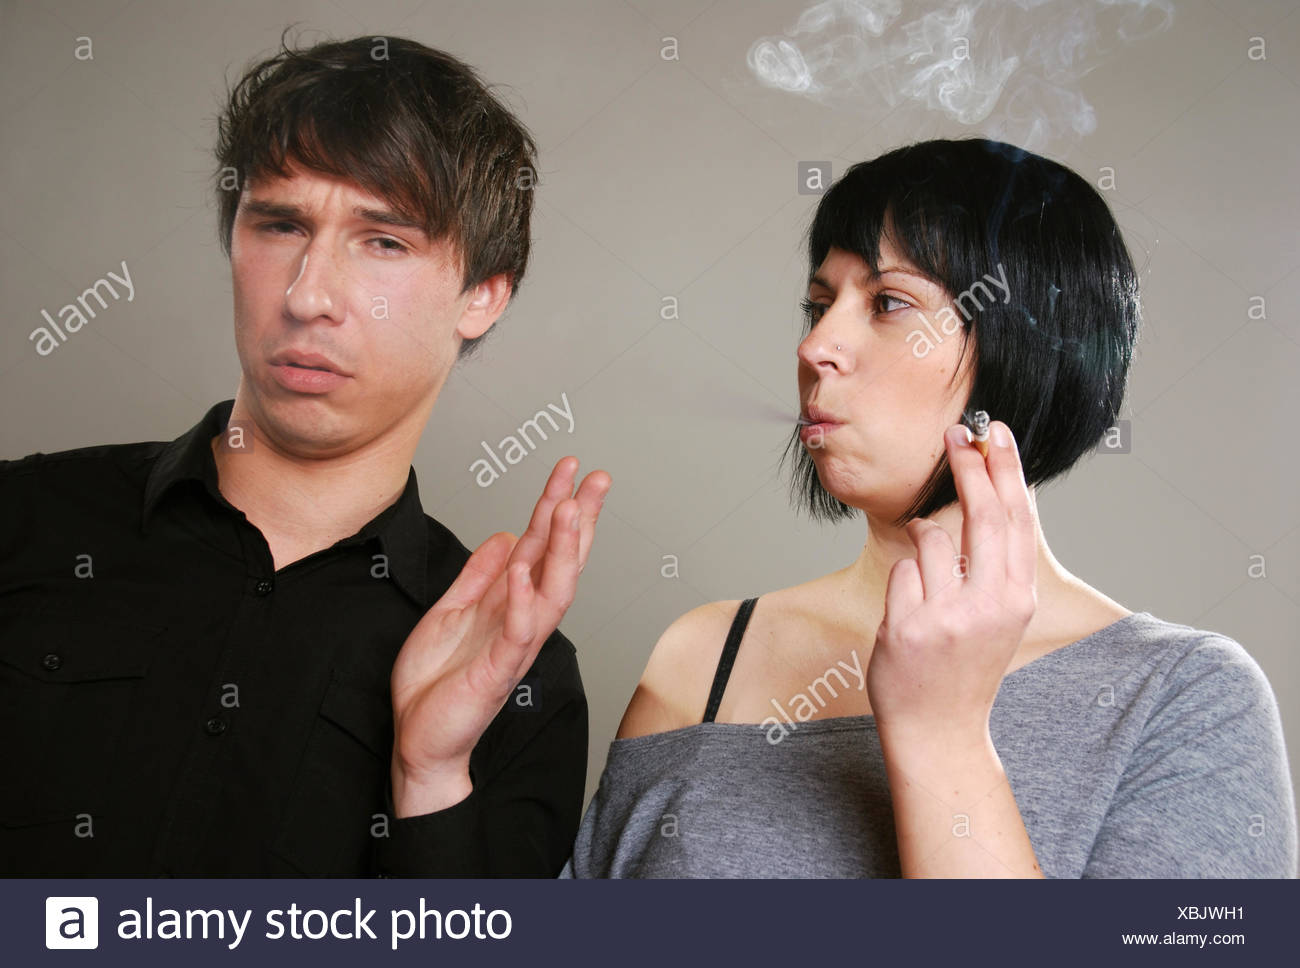 smoking vs. non smoking Stock Photo